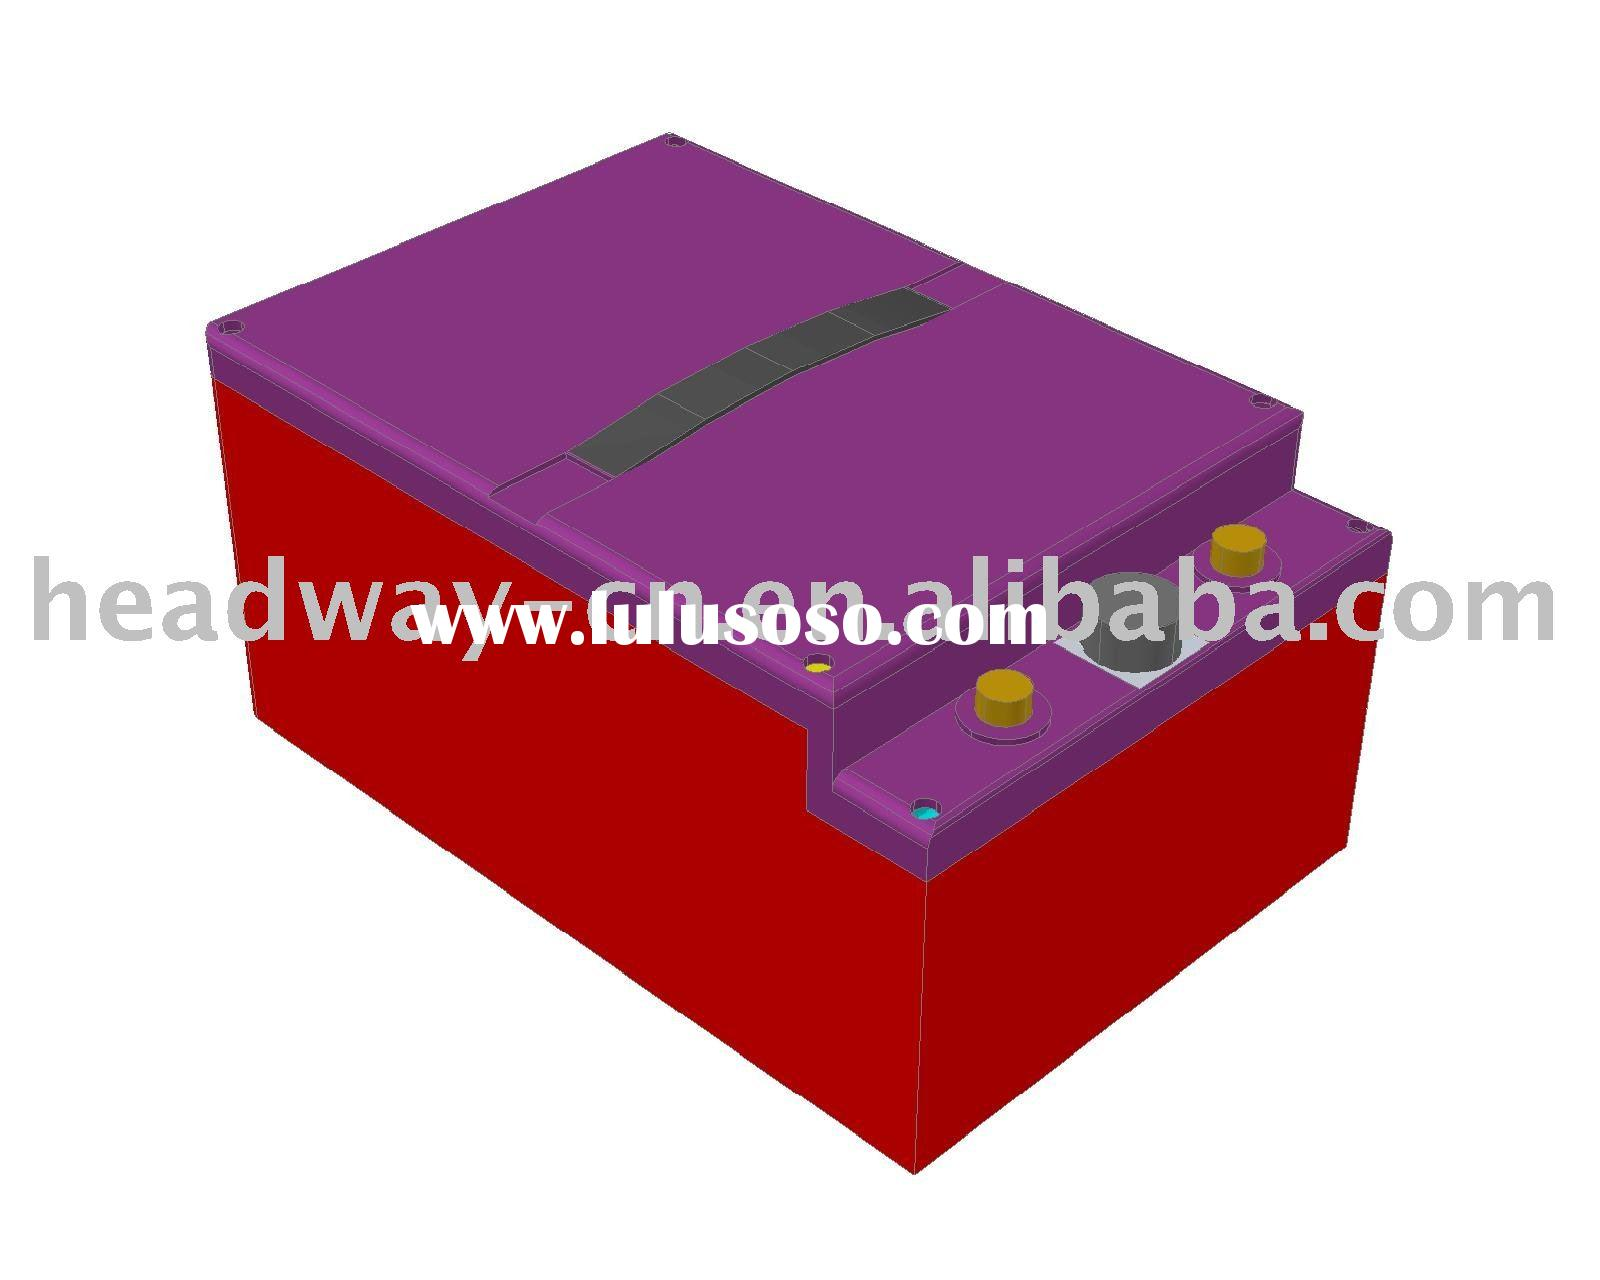 lithium ion lifepo4 electric car battery headway 48v50Ah